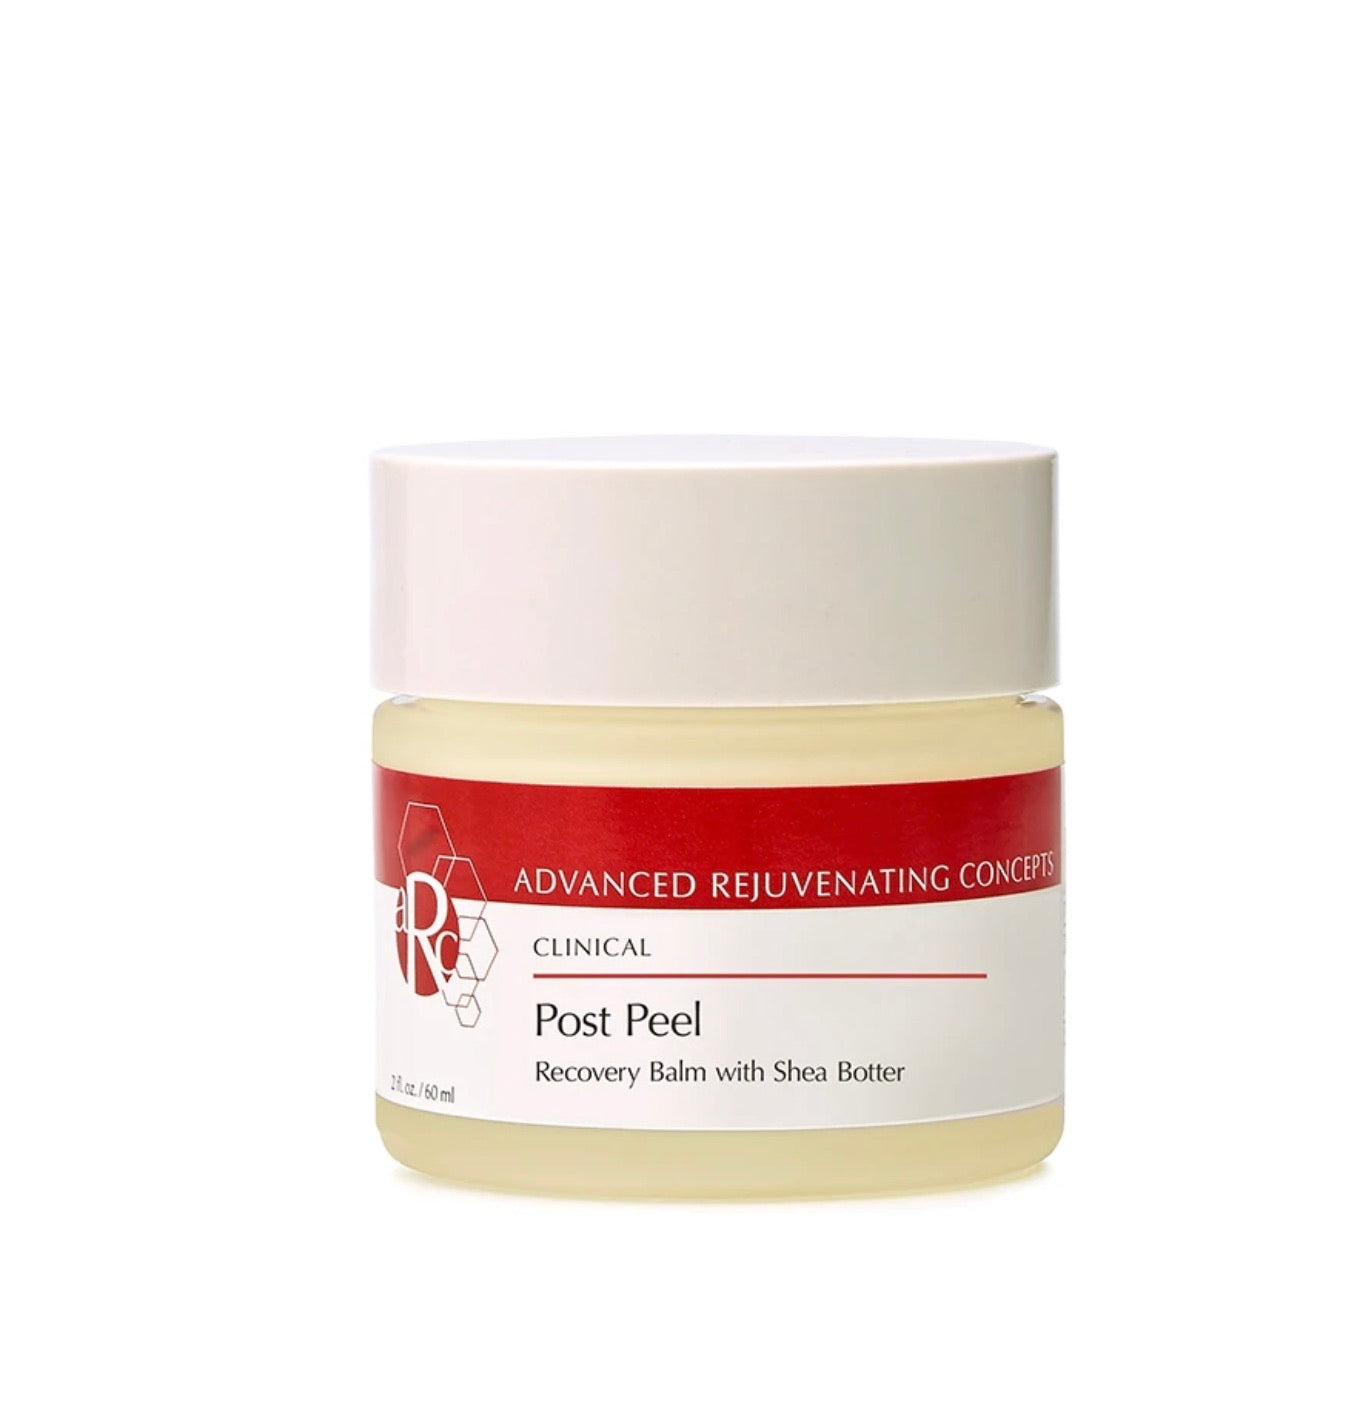 Post Peel Recovery Balm